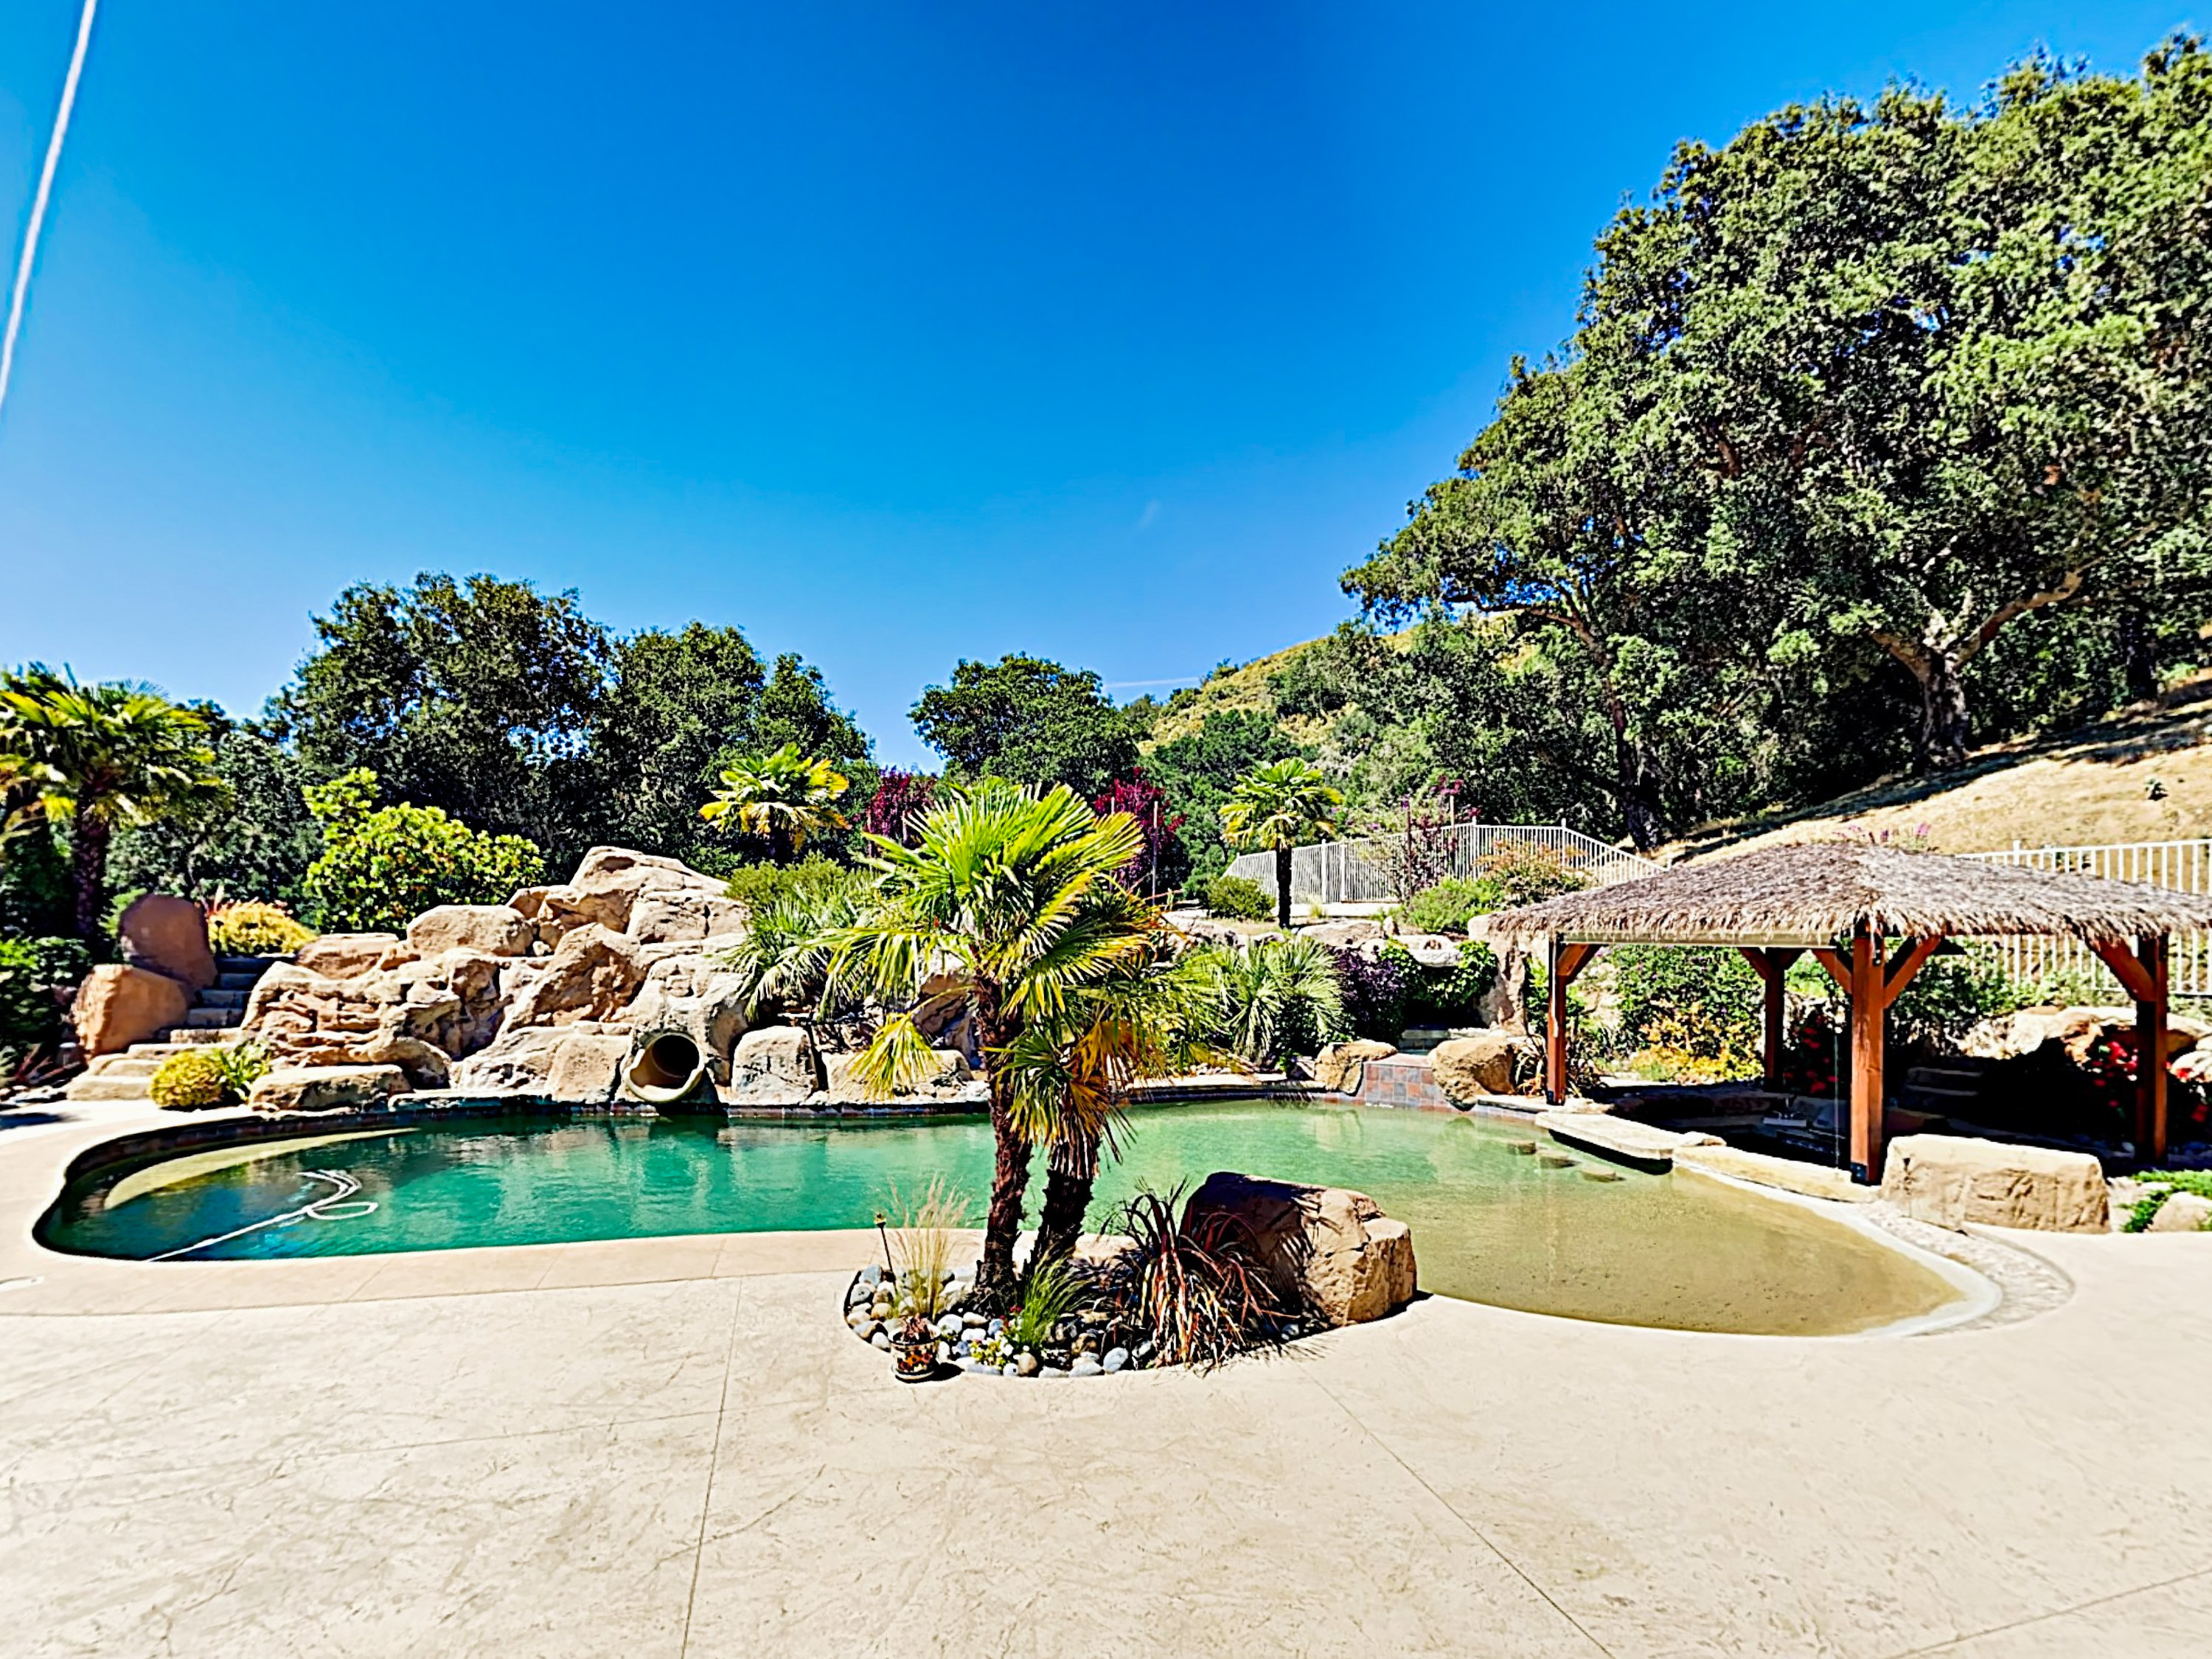 Atascadero CA Vacation Rental Welcome to Paso